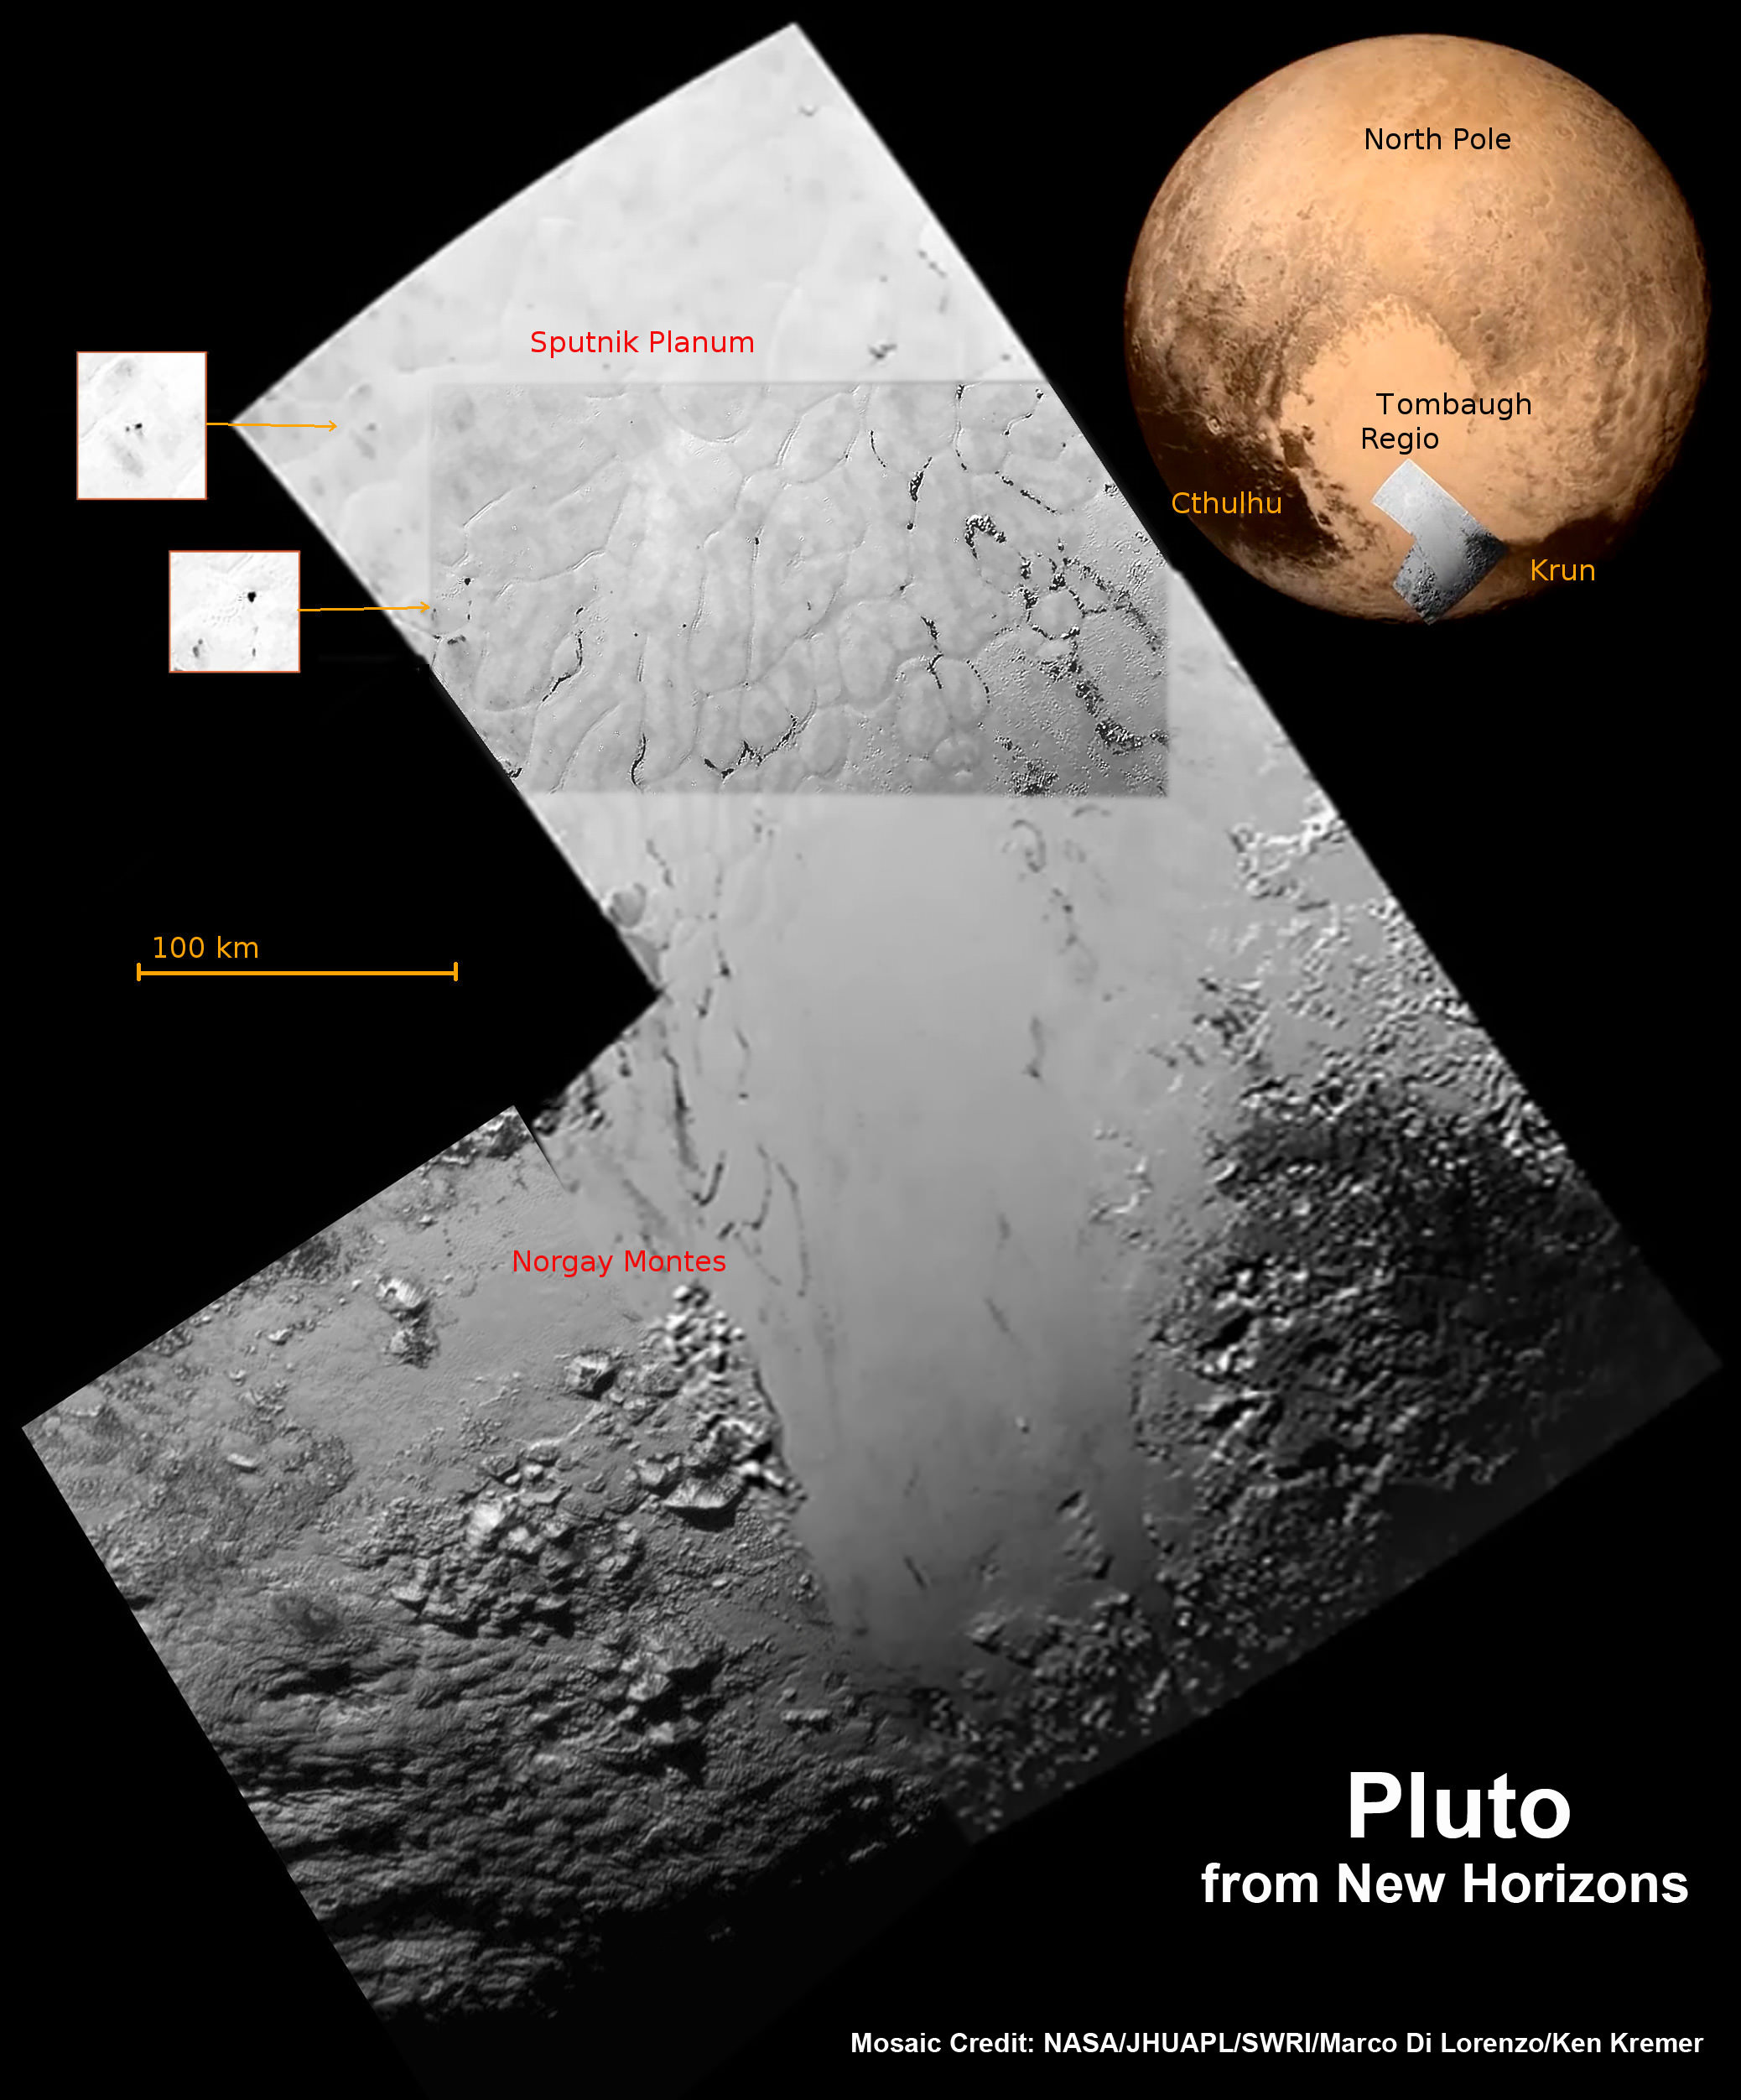 Hi Res mosaic of 'Tombaugh Regio' shows the heart-shaped region on Pluto and focuses on icy mountain ranges of 'Norgay Montes' and ice plains of 'Sputnik Planum.' The new mosaic combines highest resolution imagery captured by NASA's New Horizons LORRI imager during history making closest approach flyby on July 14, 2015, draped over a wider, lower resolution view of Tombaugh Regio.   Inset at left shows possible wind streaks.  Inset at right shows global view of Pluto with location of huge heart-shaped region in context.  Annotated with place names.  Credit: NASA/JHUAPL/SWRI/ Marco Di Lorenzo/Ken Kremer/kenkremer.com